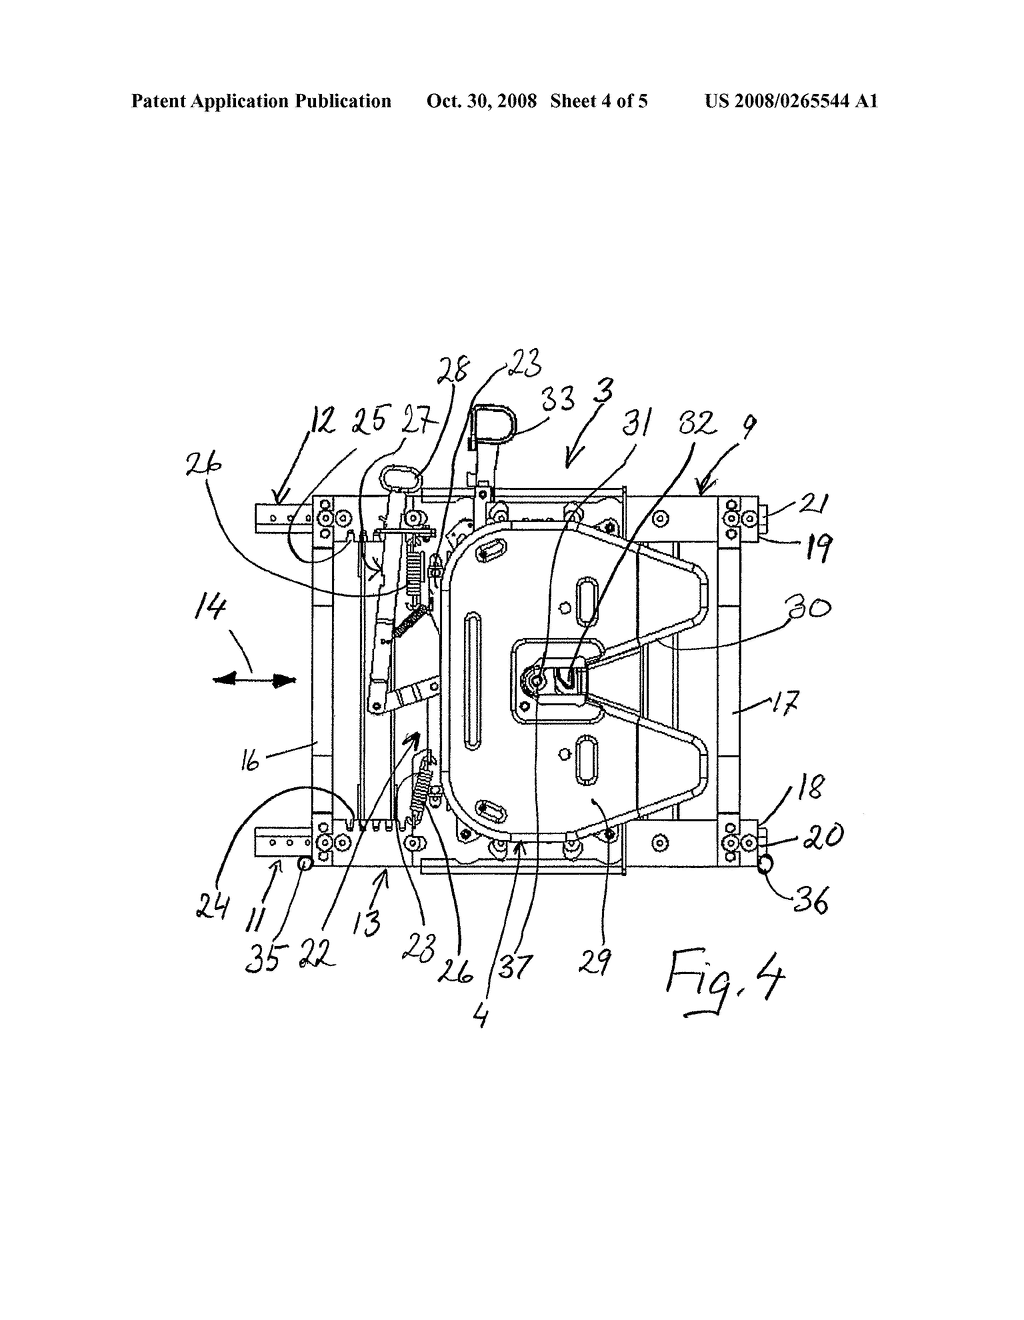 hight resolution of fifth wheel assembly for coupling a trailer to a truck tractor and a method for operating said assembly diagram schematic and image 05